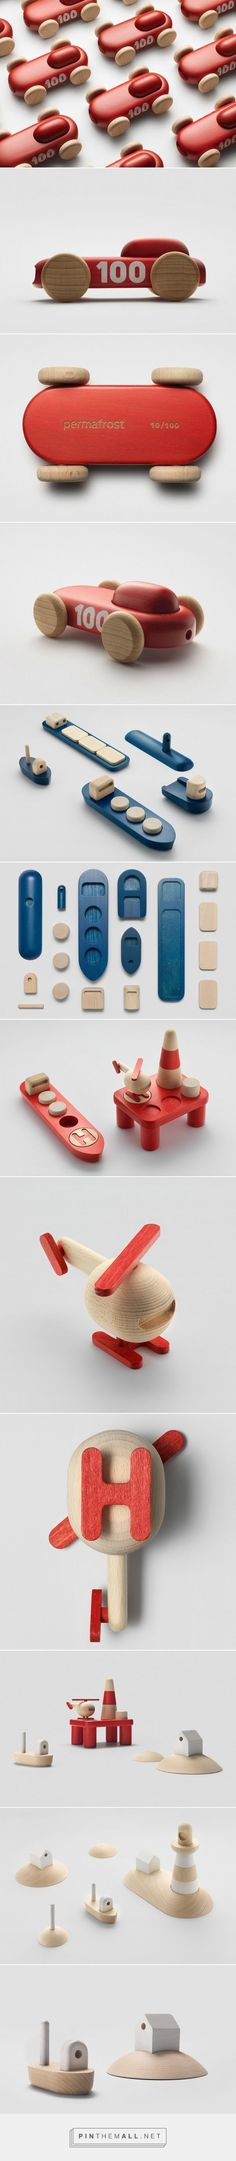 Wooden Toys by Permafrost | Inspiration Grid | Design Inspiration - created via http://pinthemall.net #woodentoy